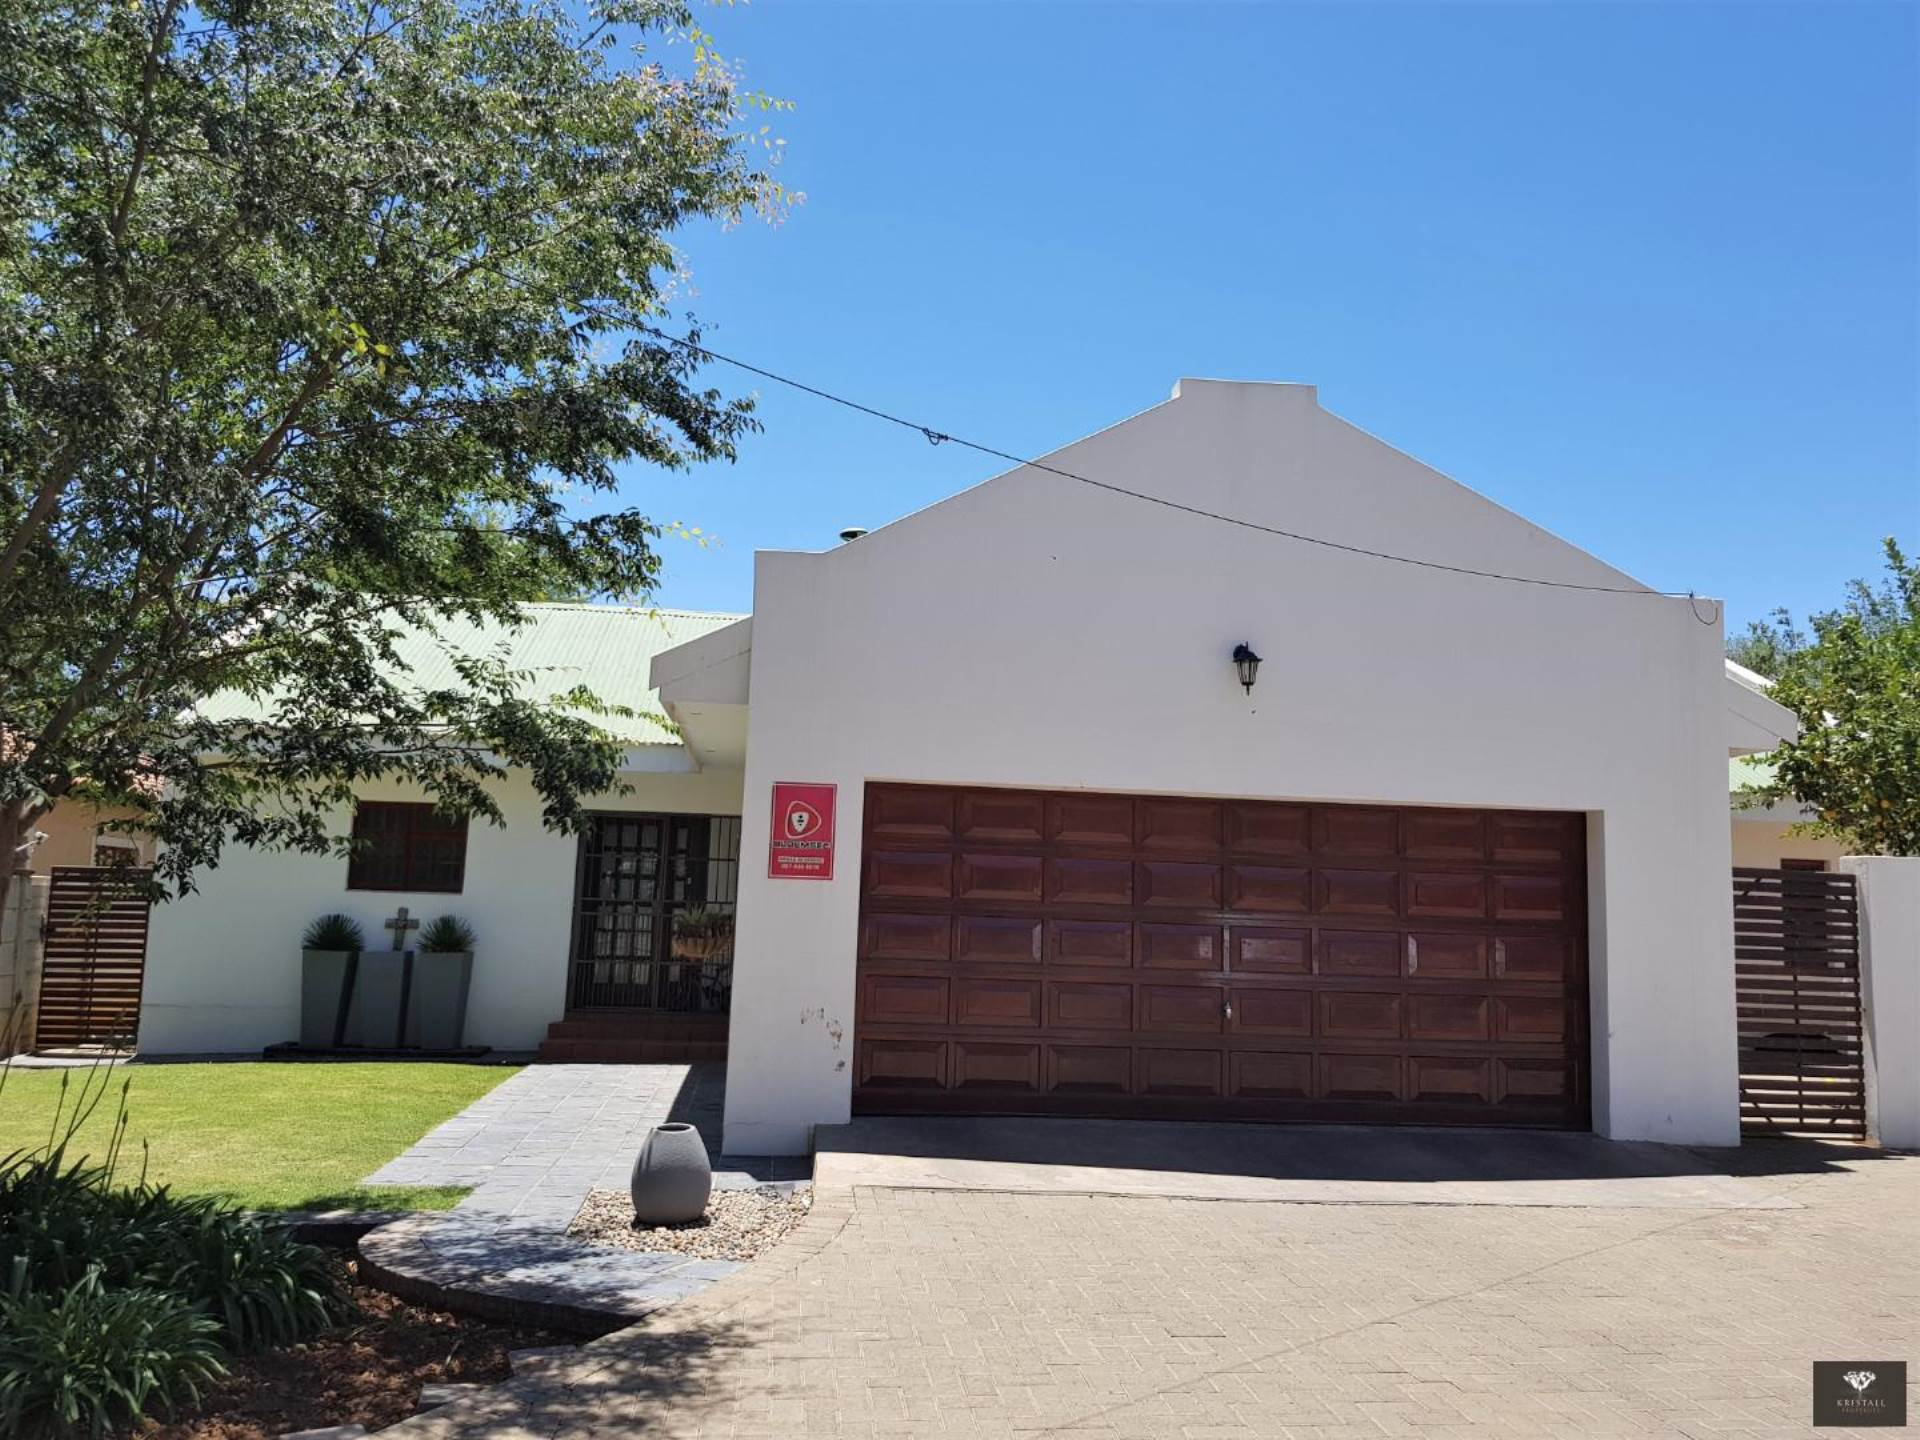 Double automated garages direct access into property